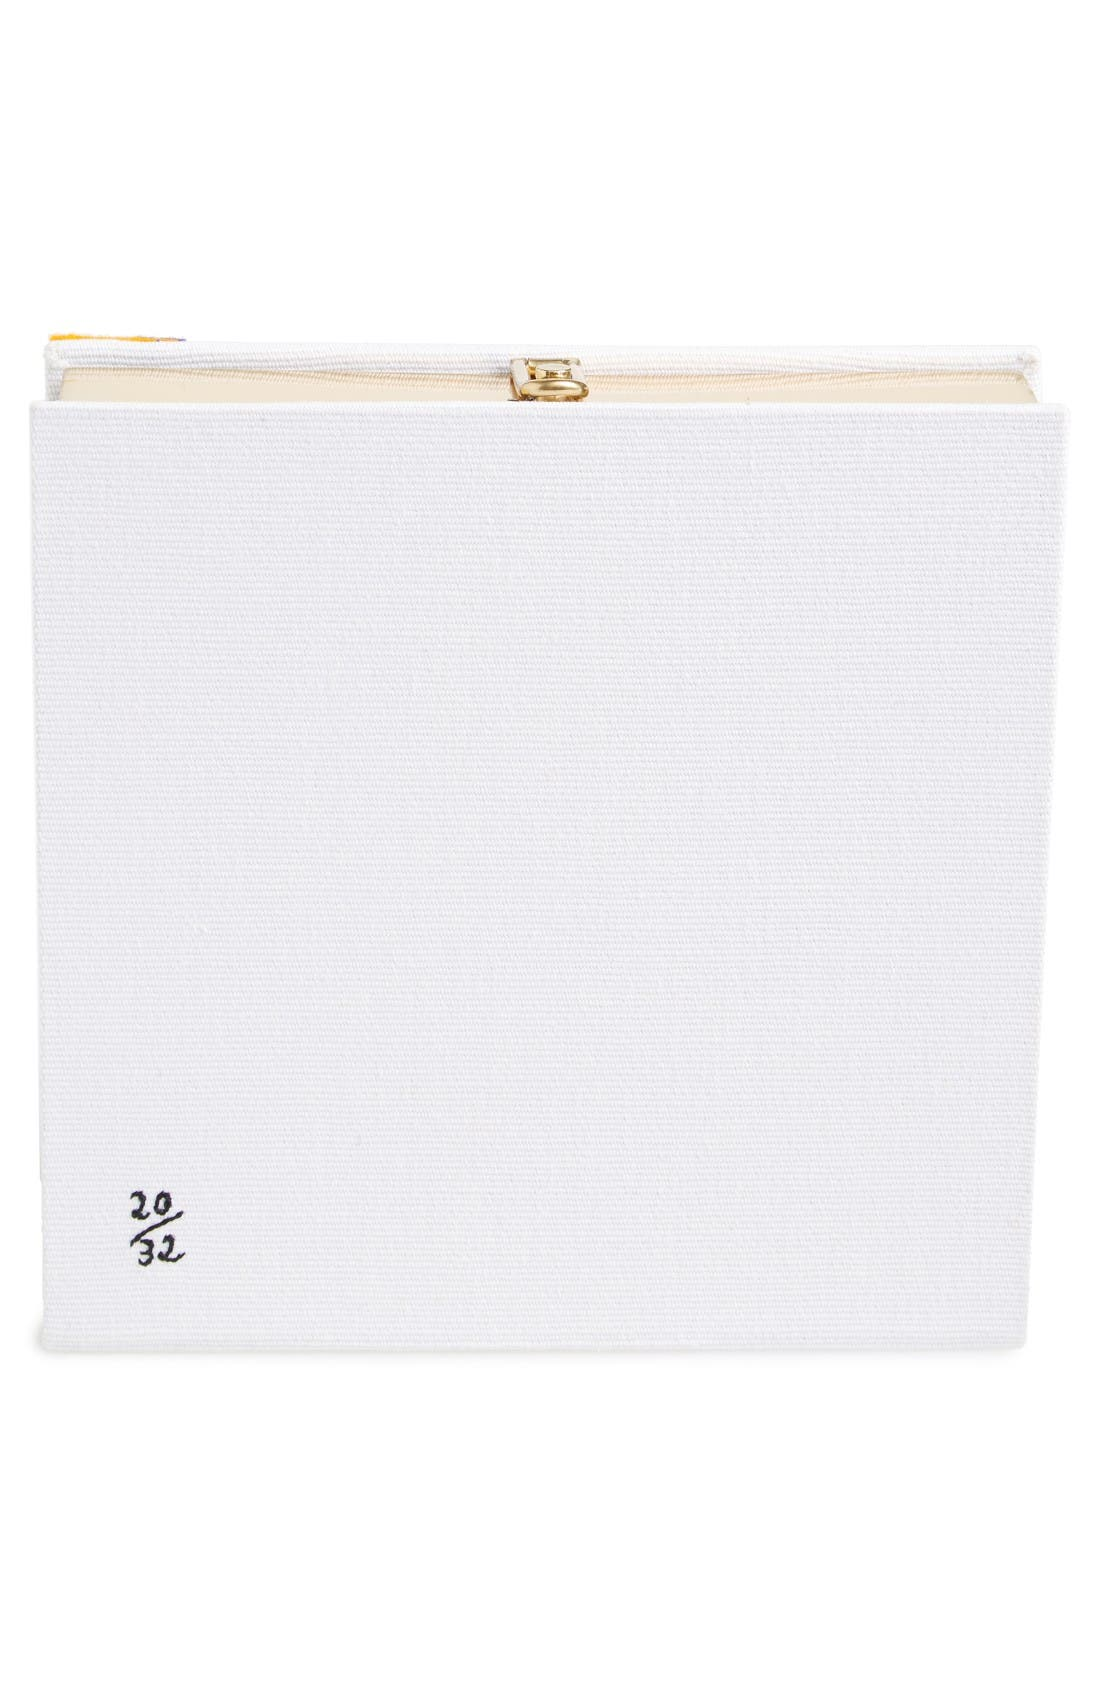 Square Face Book Clutch,                             Alternate thumbnail 2, color,                             White